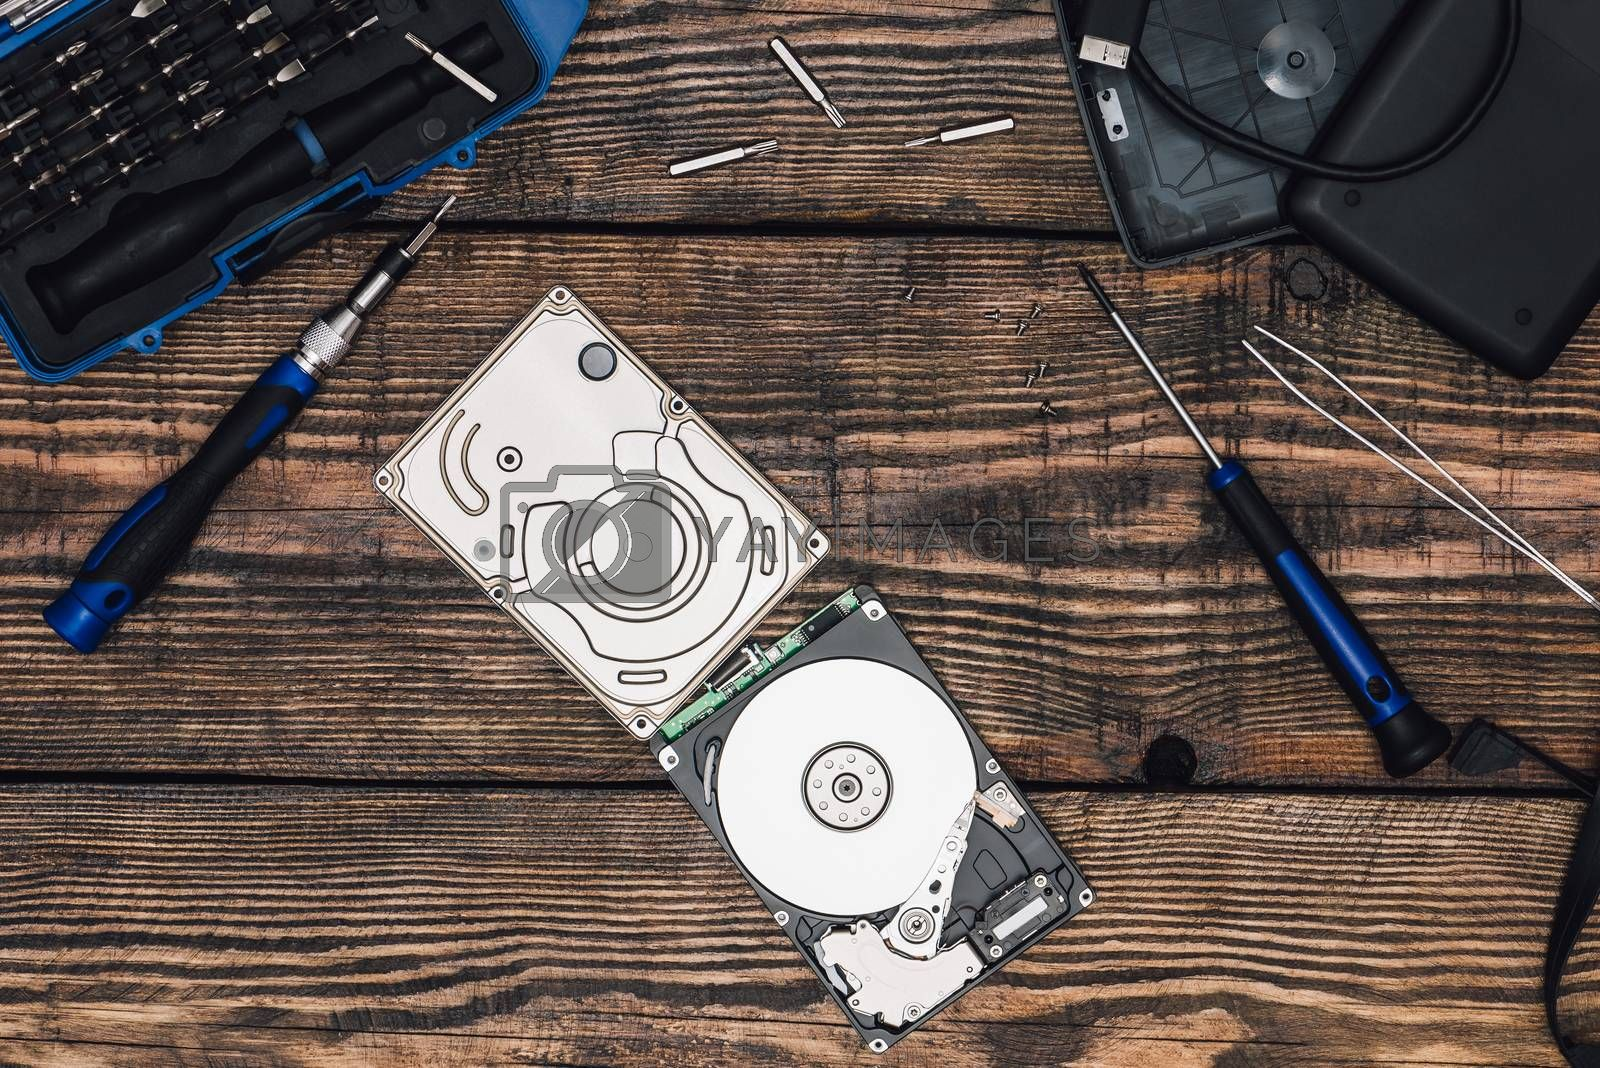 HDD with Screwdriver and Other Tools by Seva_blsv